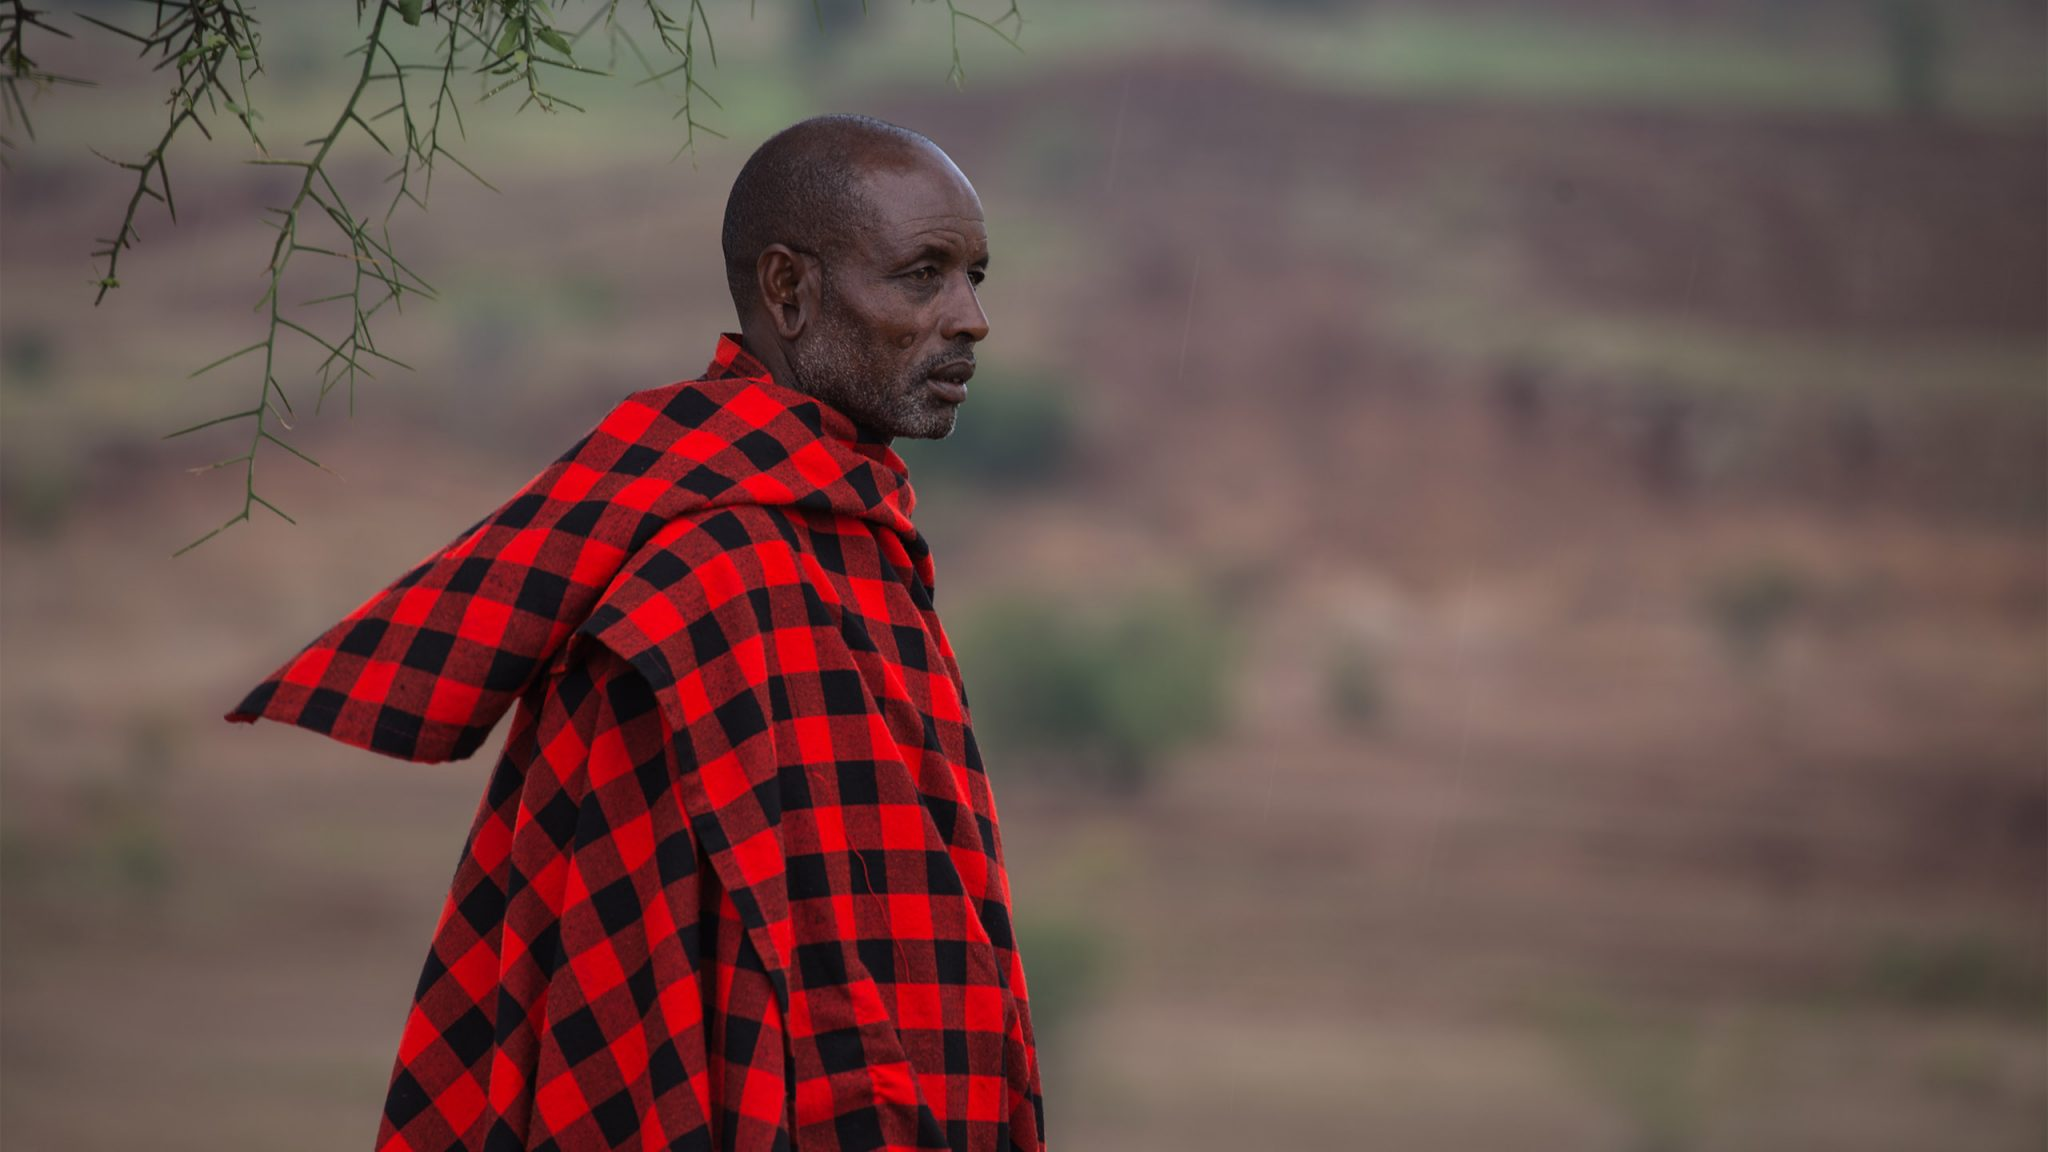 This photograph shows a Maasai pastoralist standing for a portrait in the early afternoon – just as the daily rains begin to fall around 3pm. He works with his cattle in the fields behind him, which show deep trenches falling away from the land caused by soil erosion. 'Five years has shown extreme changes' he informs me sadly.